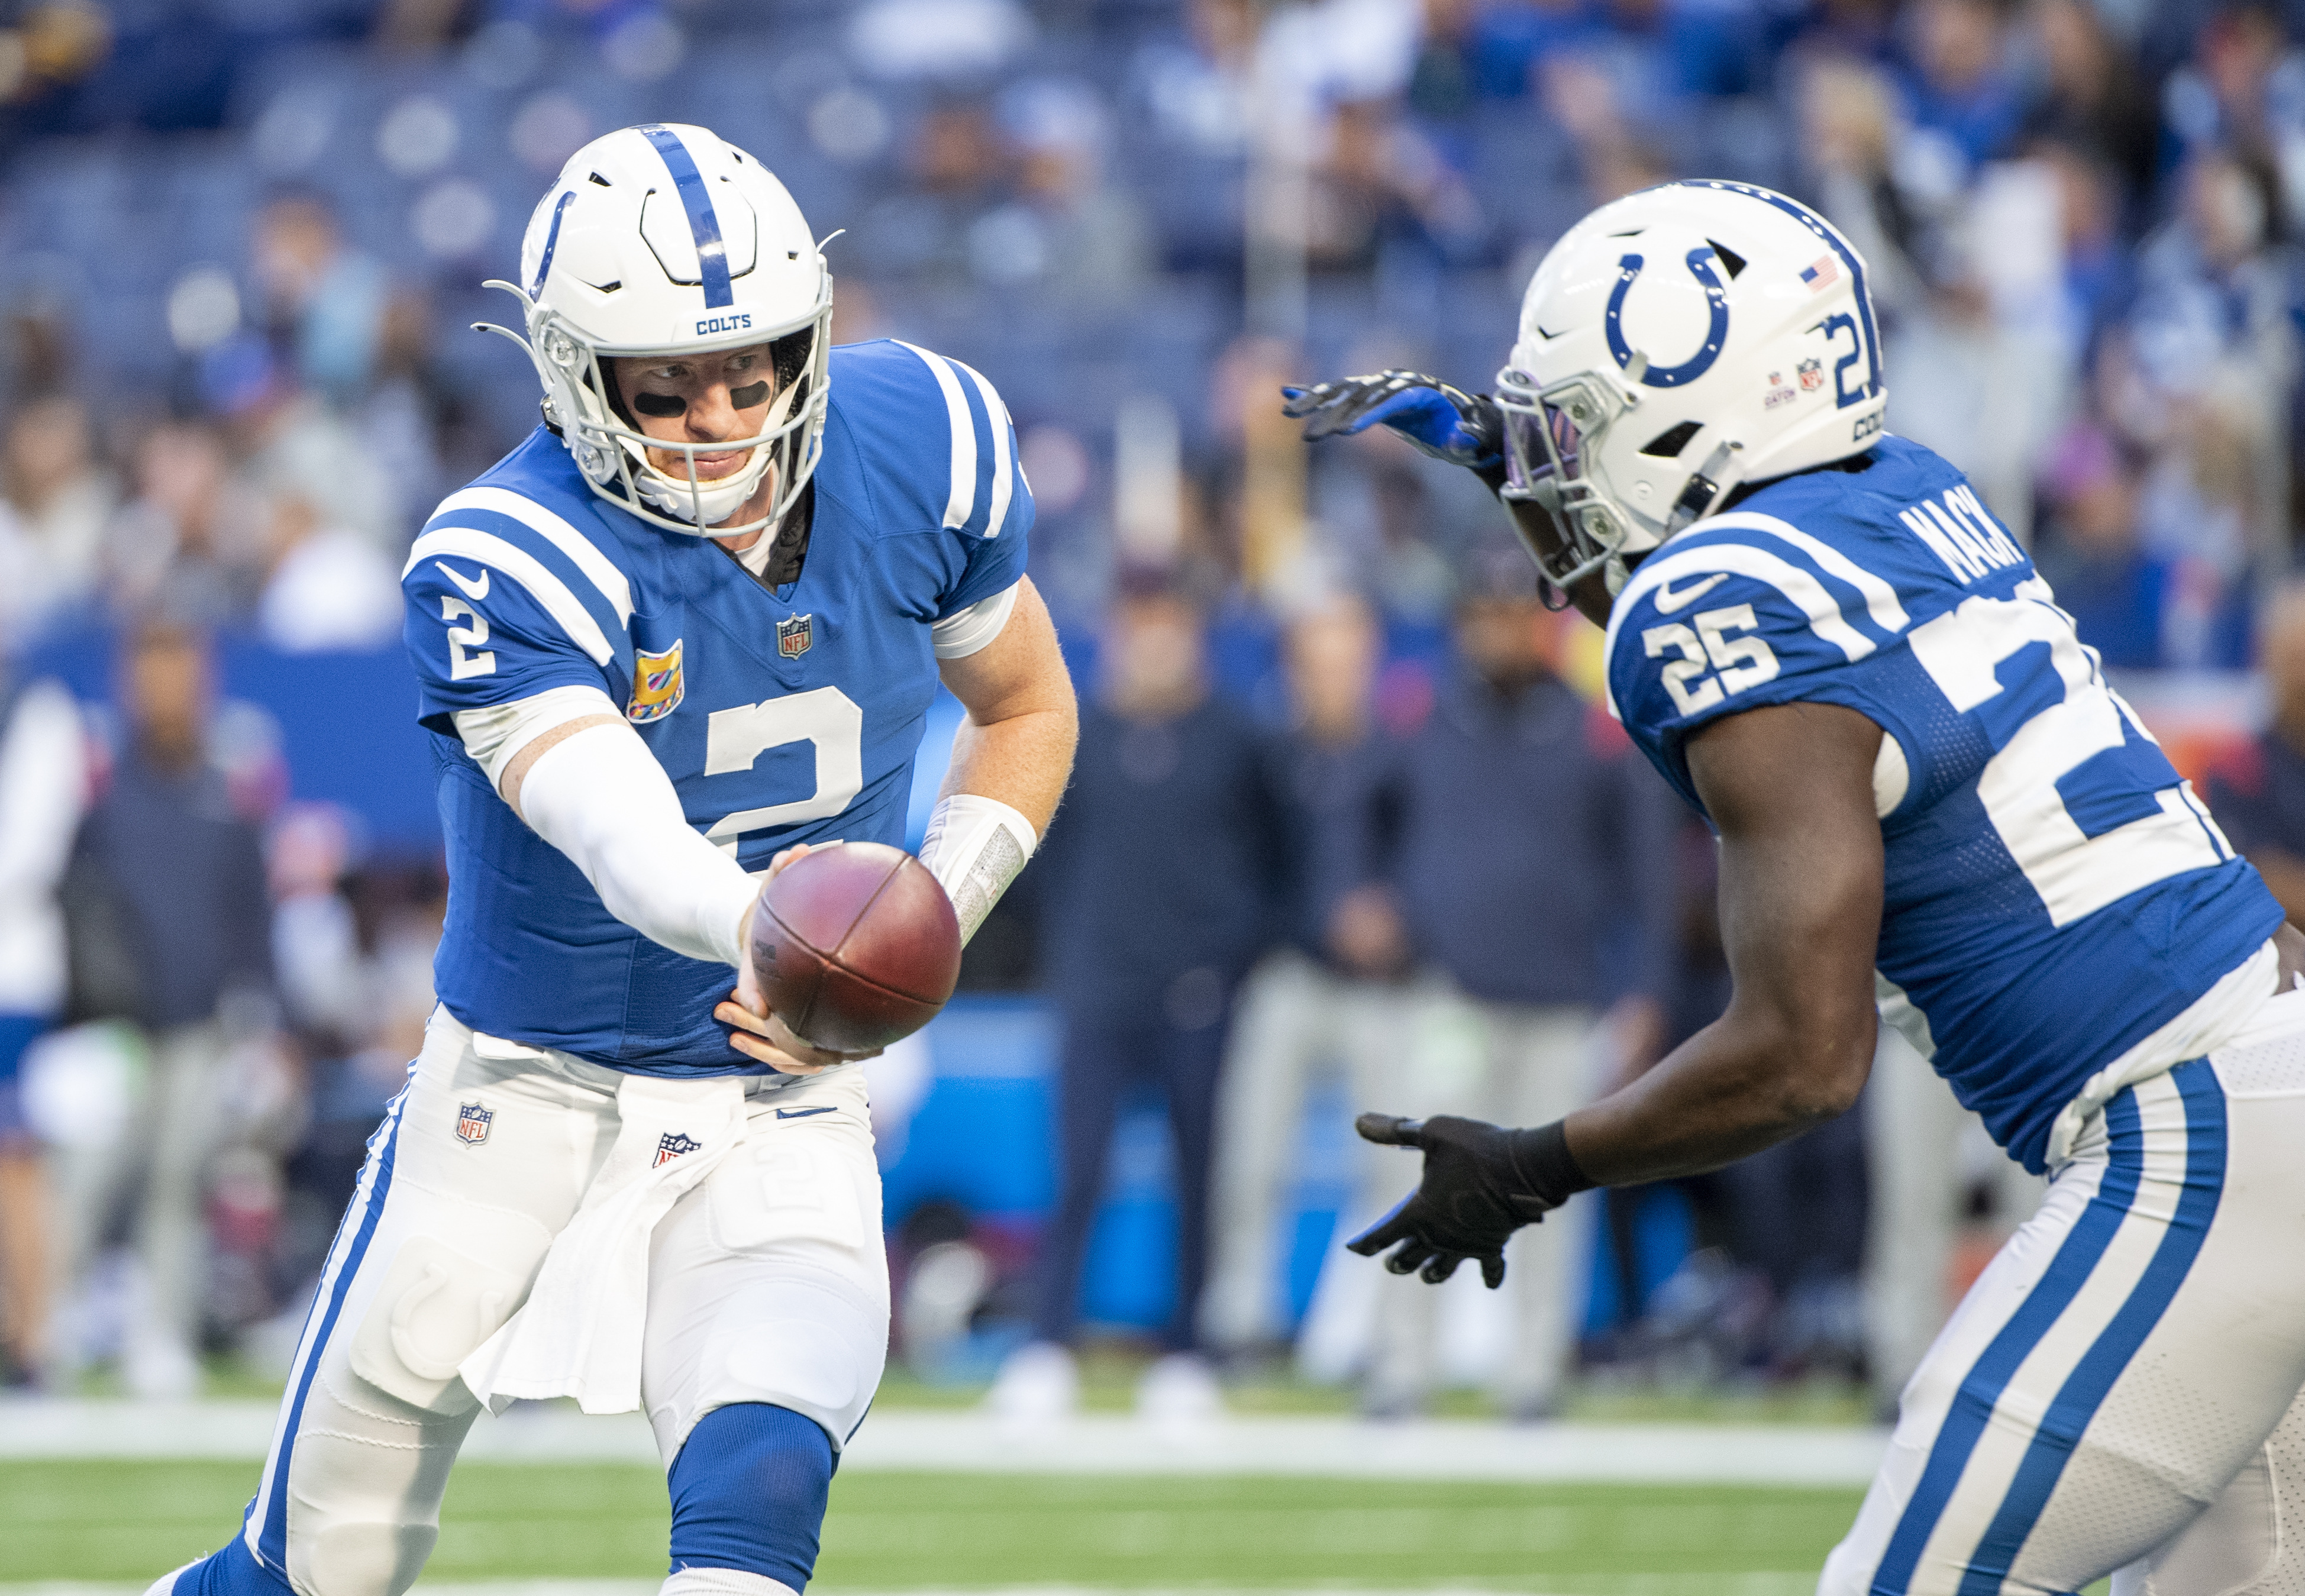 Indianapolis Colts quarterback Carson Wentz (2) hands the ball off to Indianapolis Colts running back Marlon Mack (25) during the second half at Lucas Oil Stadium. The Colts win 31-3.